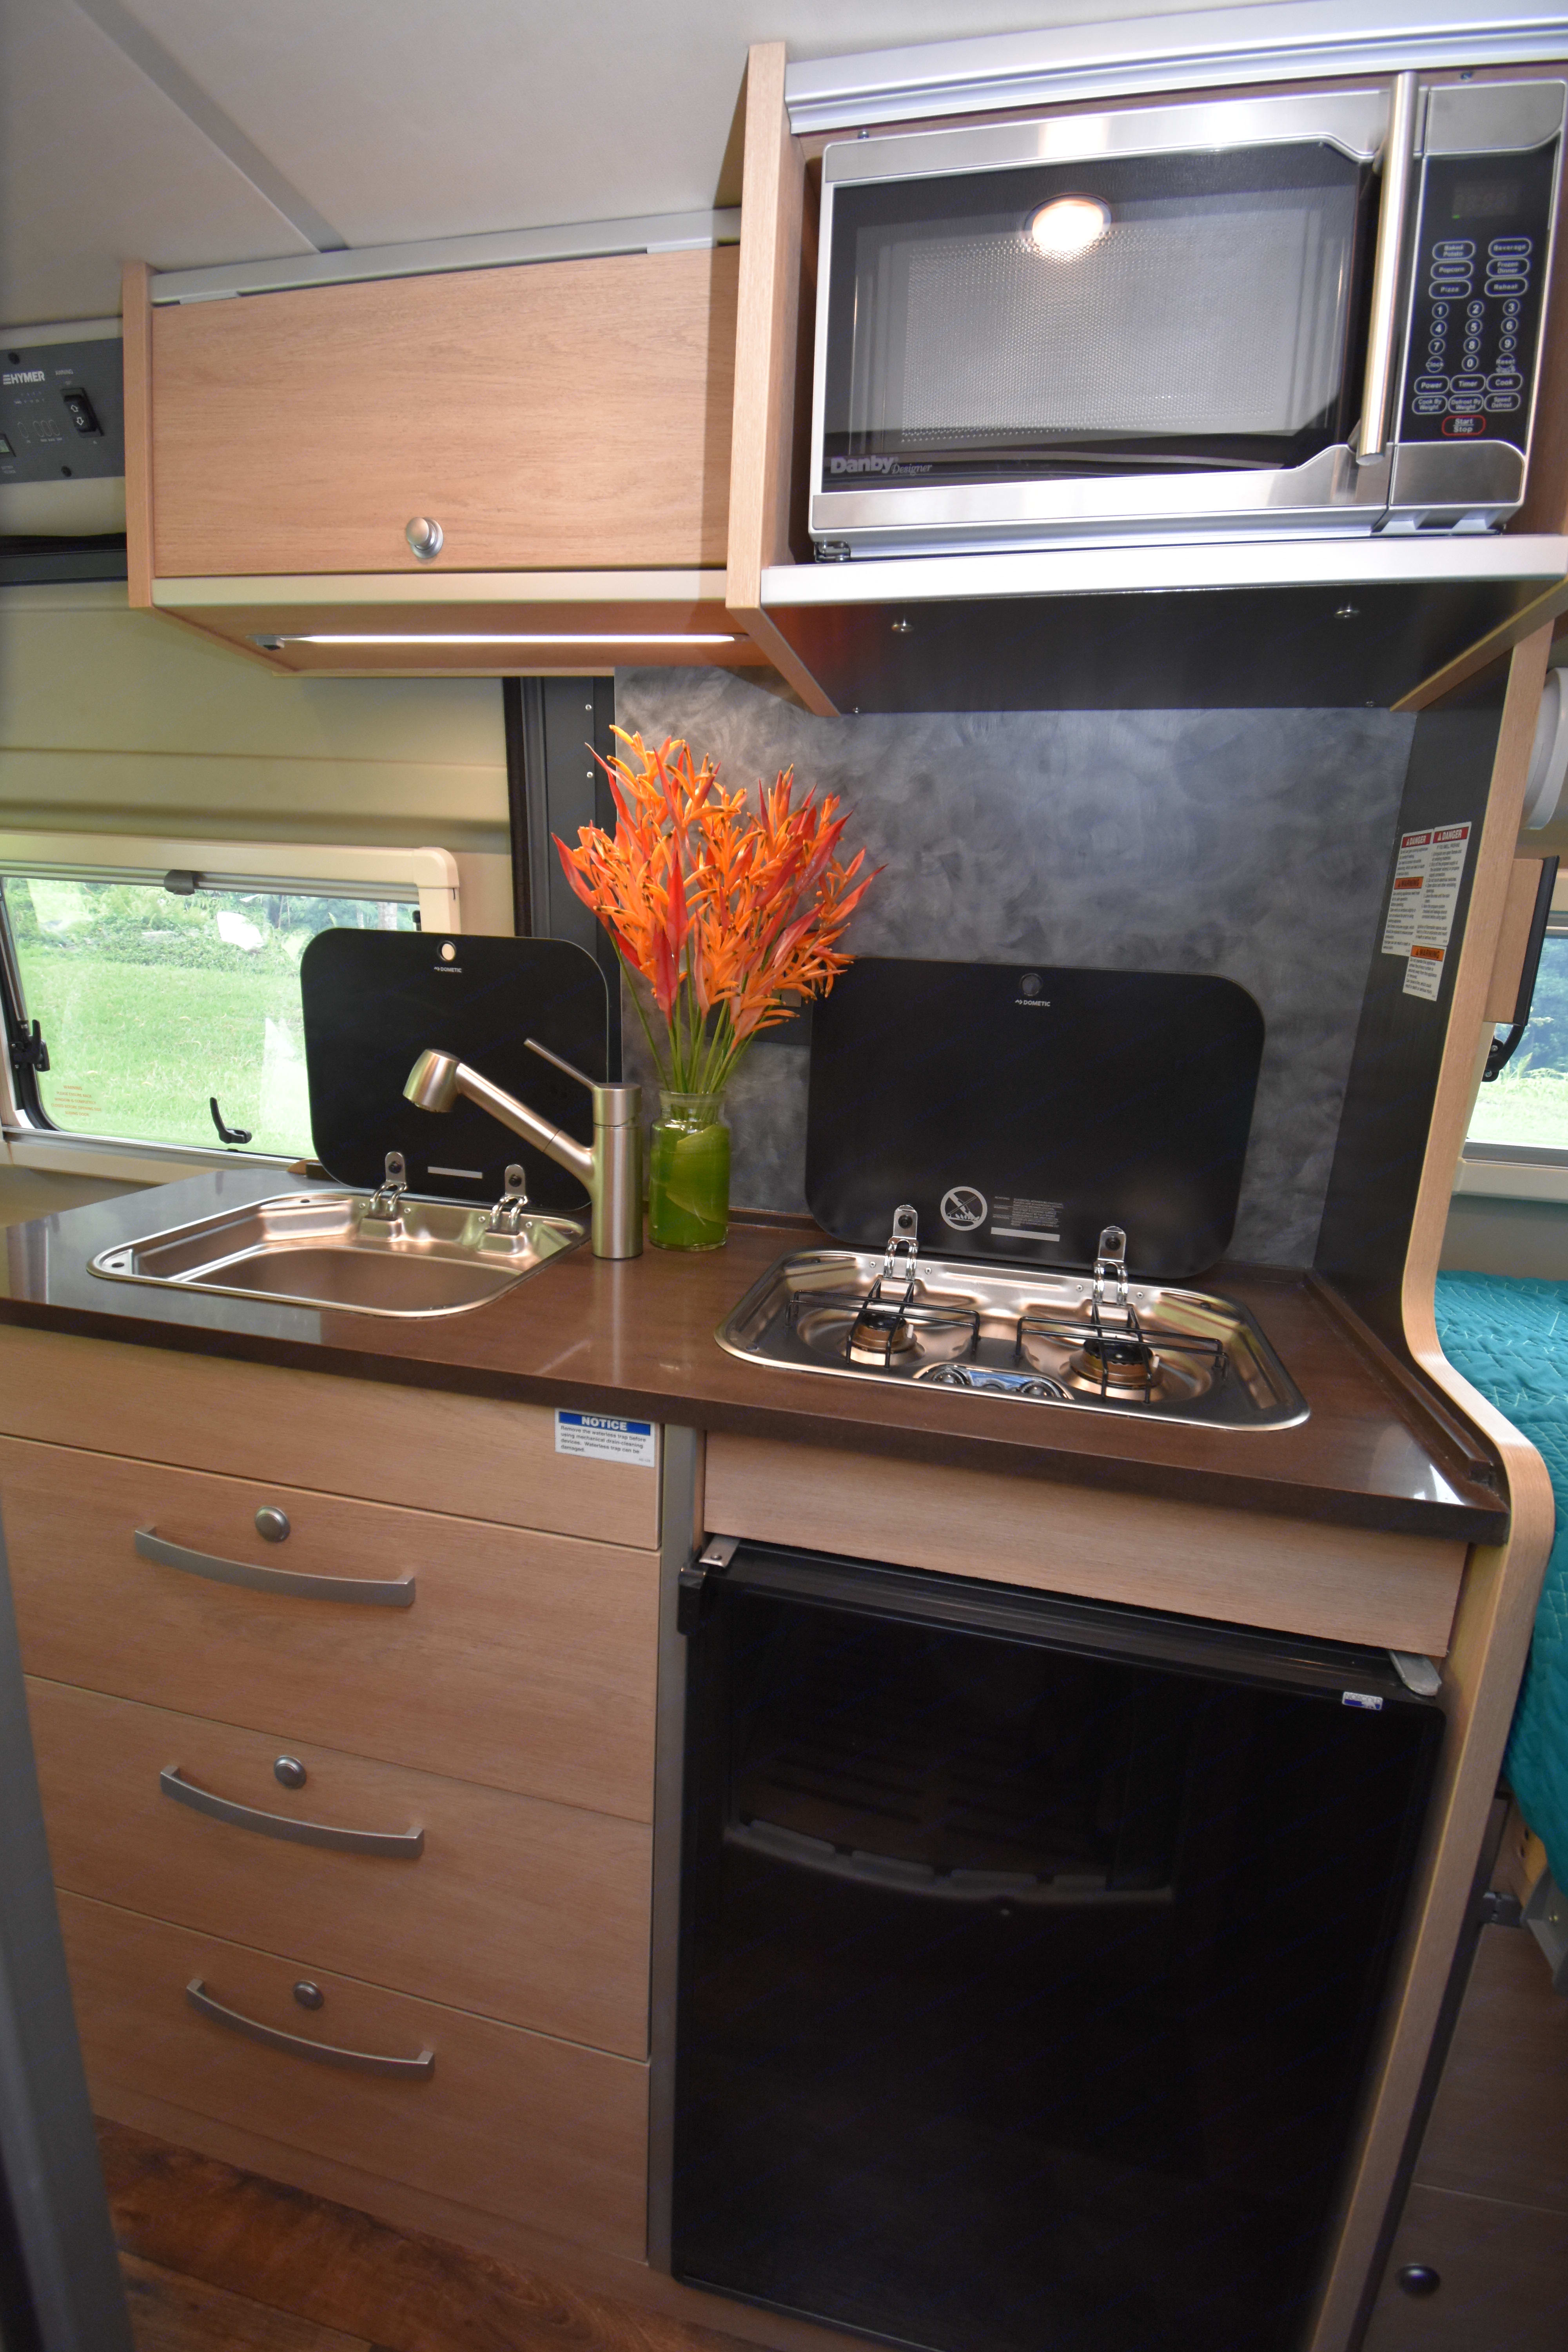 The feature-packed kitchen includes a sink, two burner stove, microwave, and refrigerator.. Hymer Aktiv 2018